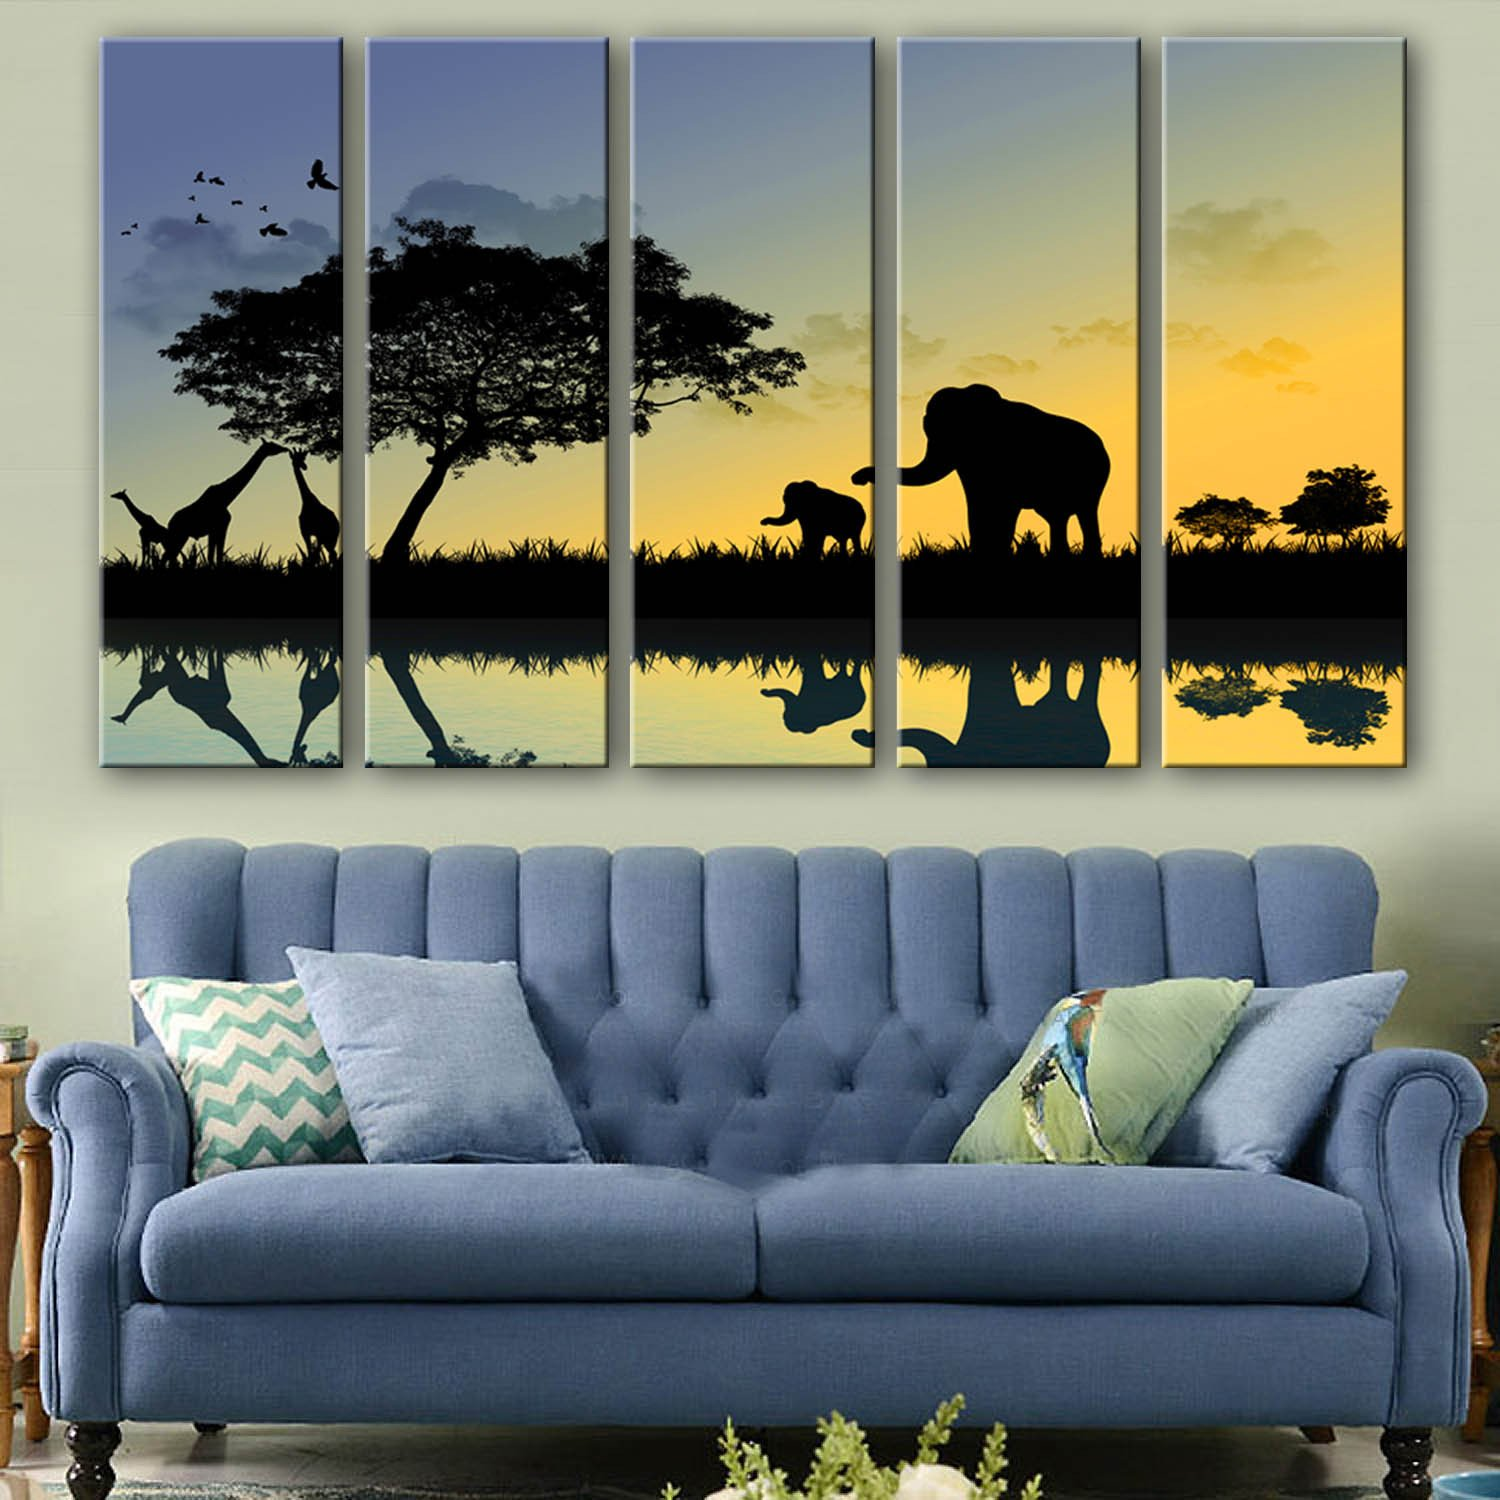 NIKUD-Set of 5 Stretched Frame Canvas Prints Wall Decoration Home Decor Living Rooms Offices Bedrooms Sunset Animals Decorative Printing Painting,30cm90cm5Panels,#FP1319 by NIKUD ART